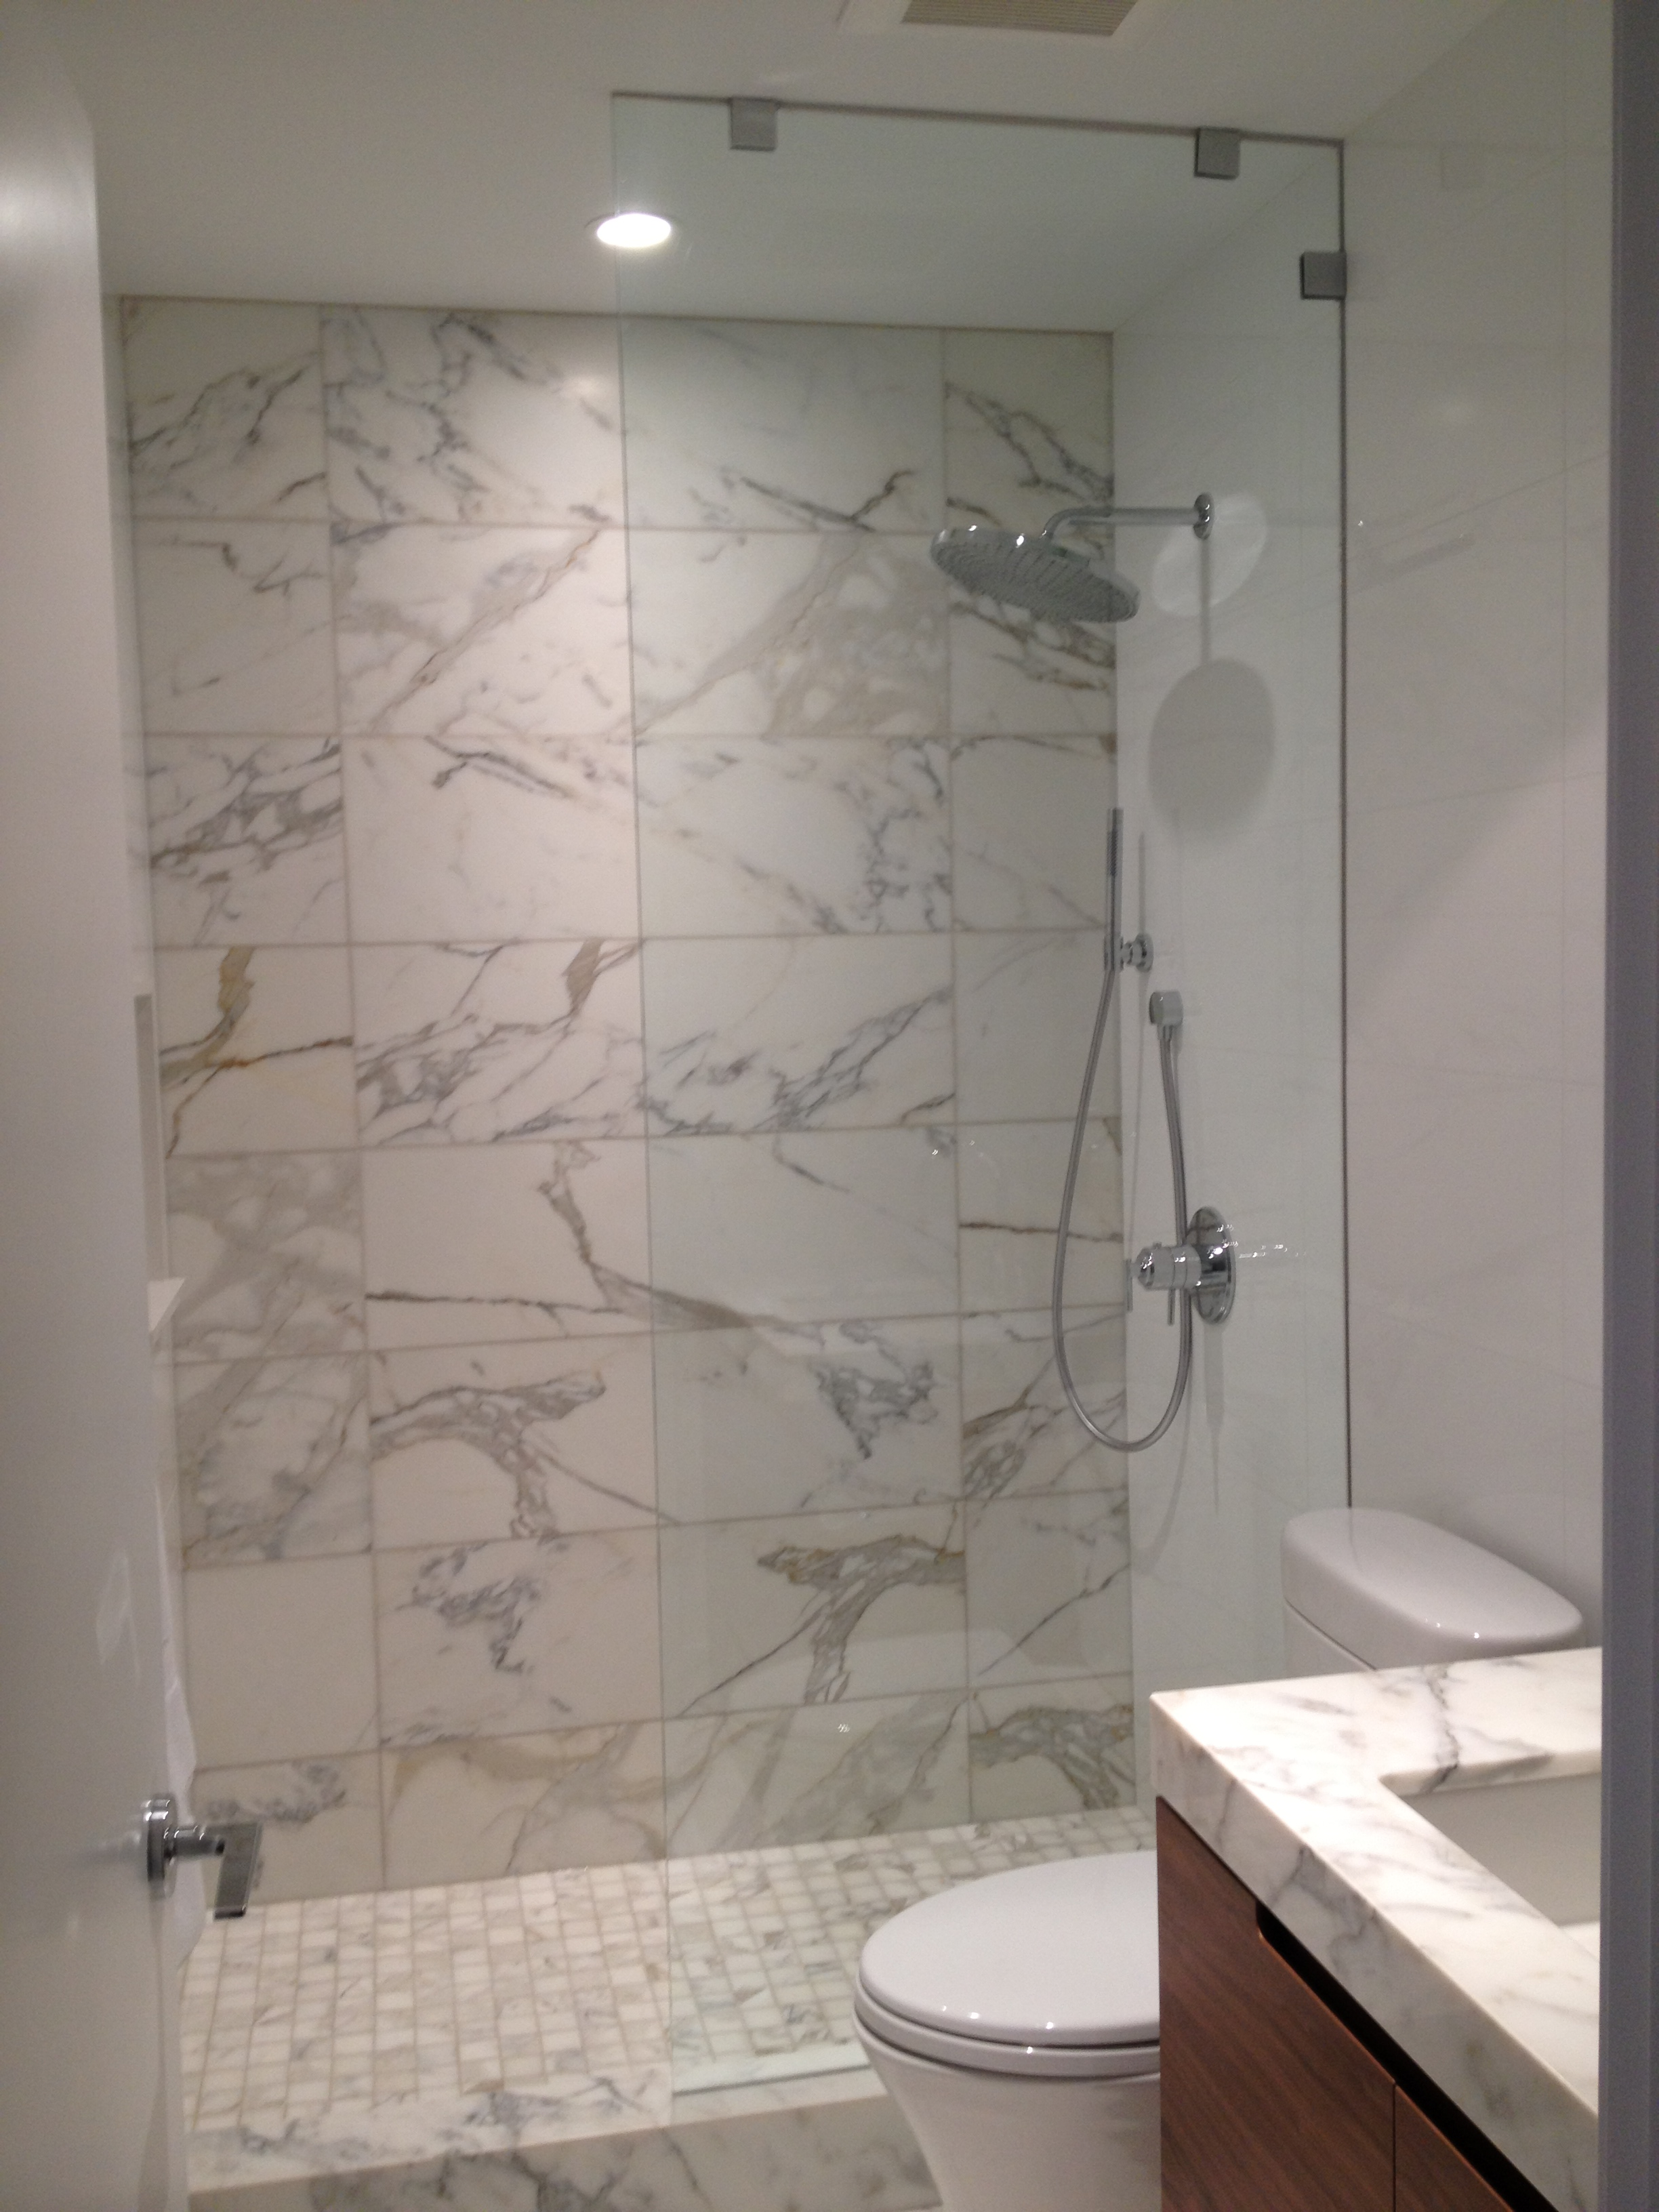 Shower doors repair replace and install in vancouver what we can do with glass shower doors eventelaan Images